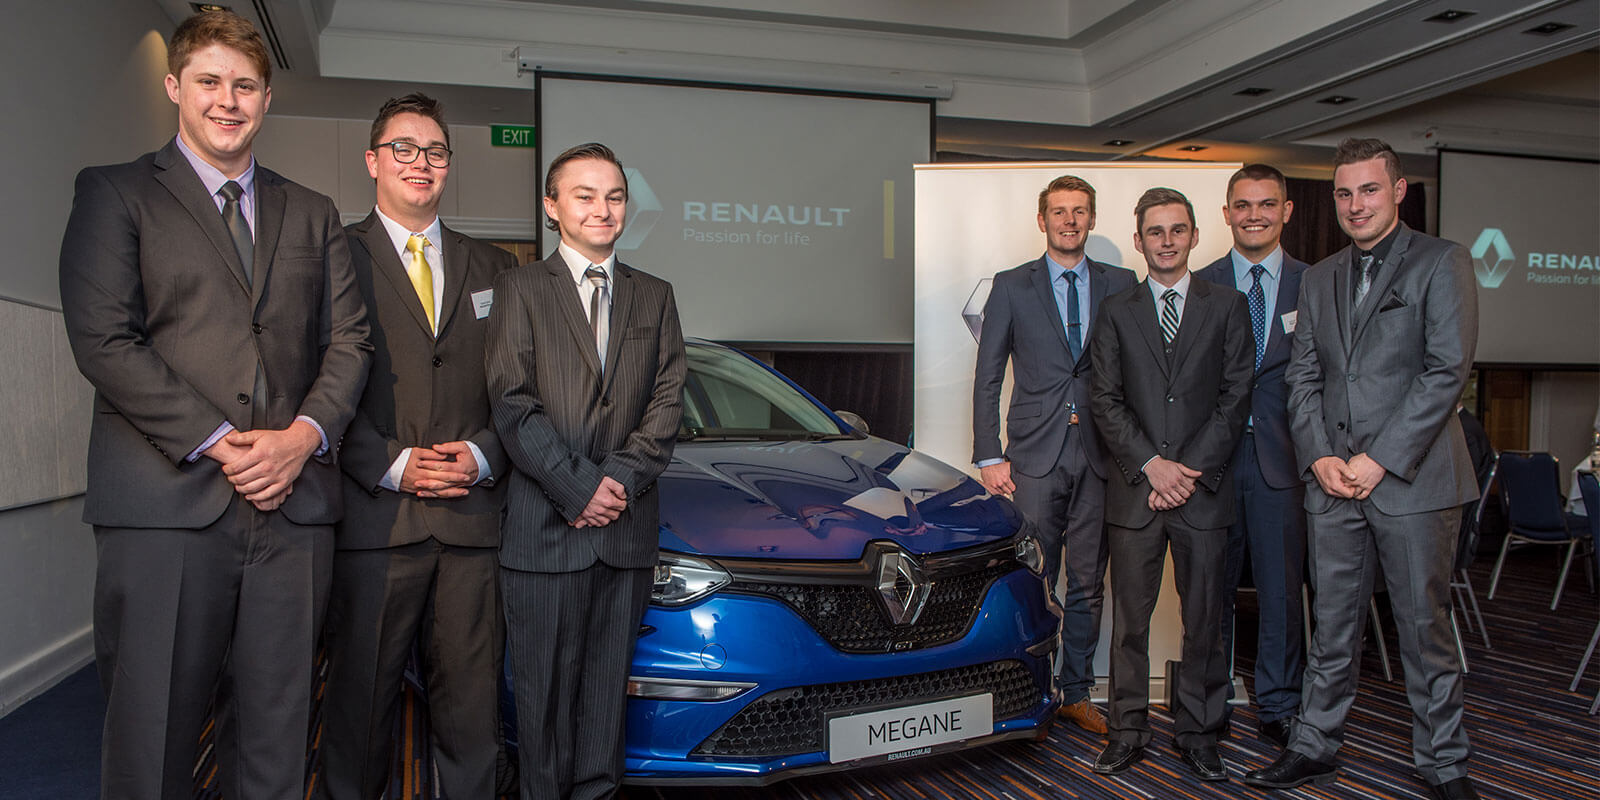 Class of 2016: The seven graduating Renault technicians this year are (from left): Dennis Townsend, Russell Elphick, Charles Power, Luke Curnow, Joshua Cook, Cameron McEwan and Joshua Robertson.